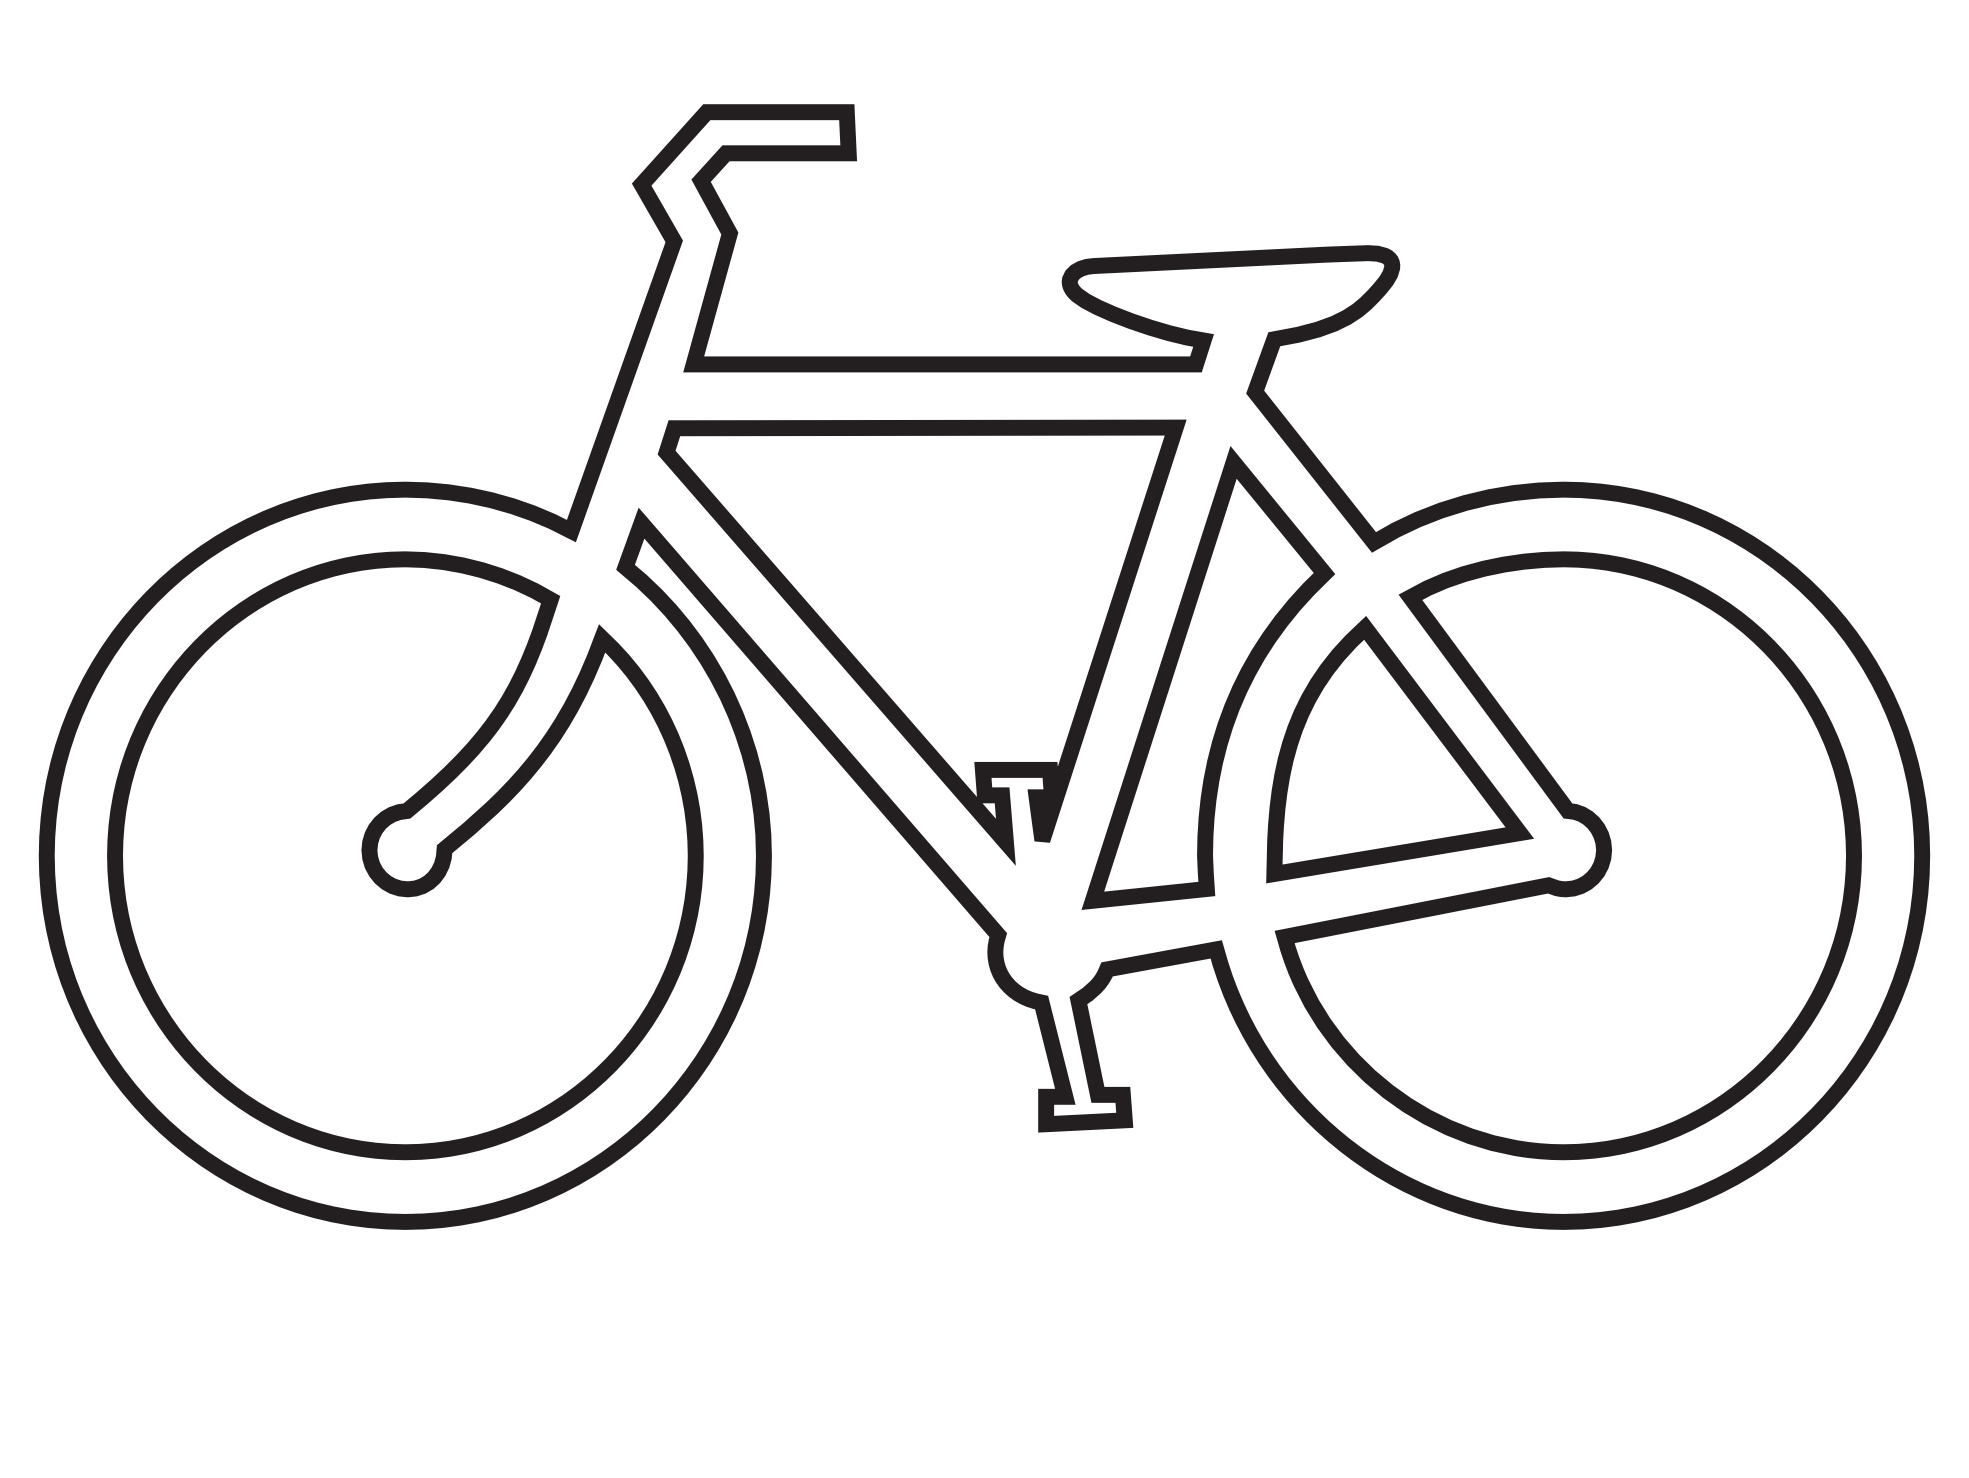 Bicycle clipart kind vehicle.